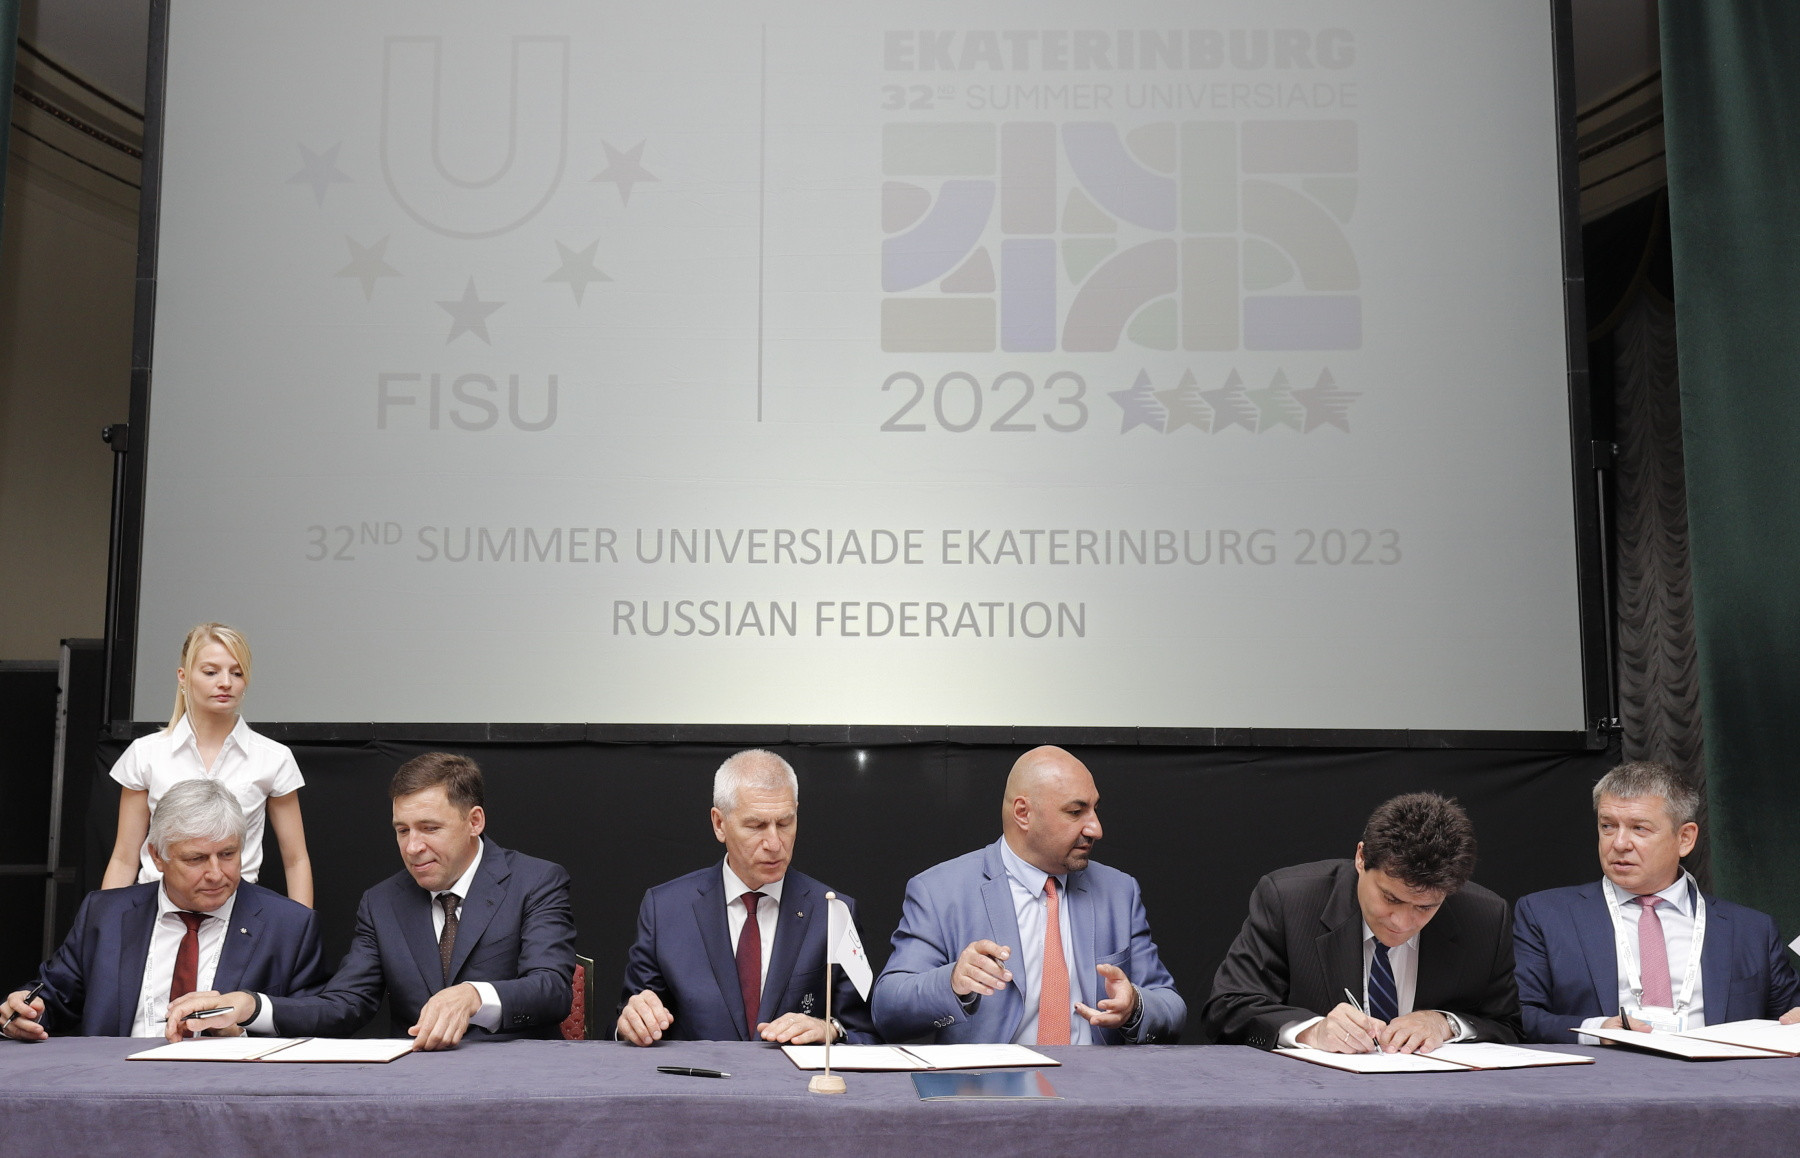 Yekaterinburg awarded 2023 Summer Universiade after bid presented to FISU Executive Committee